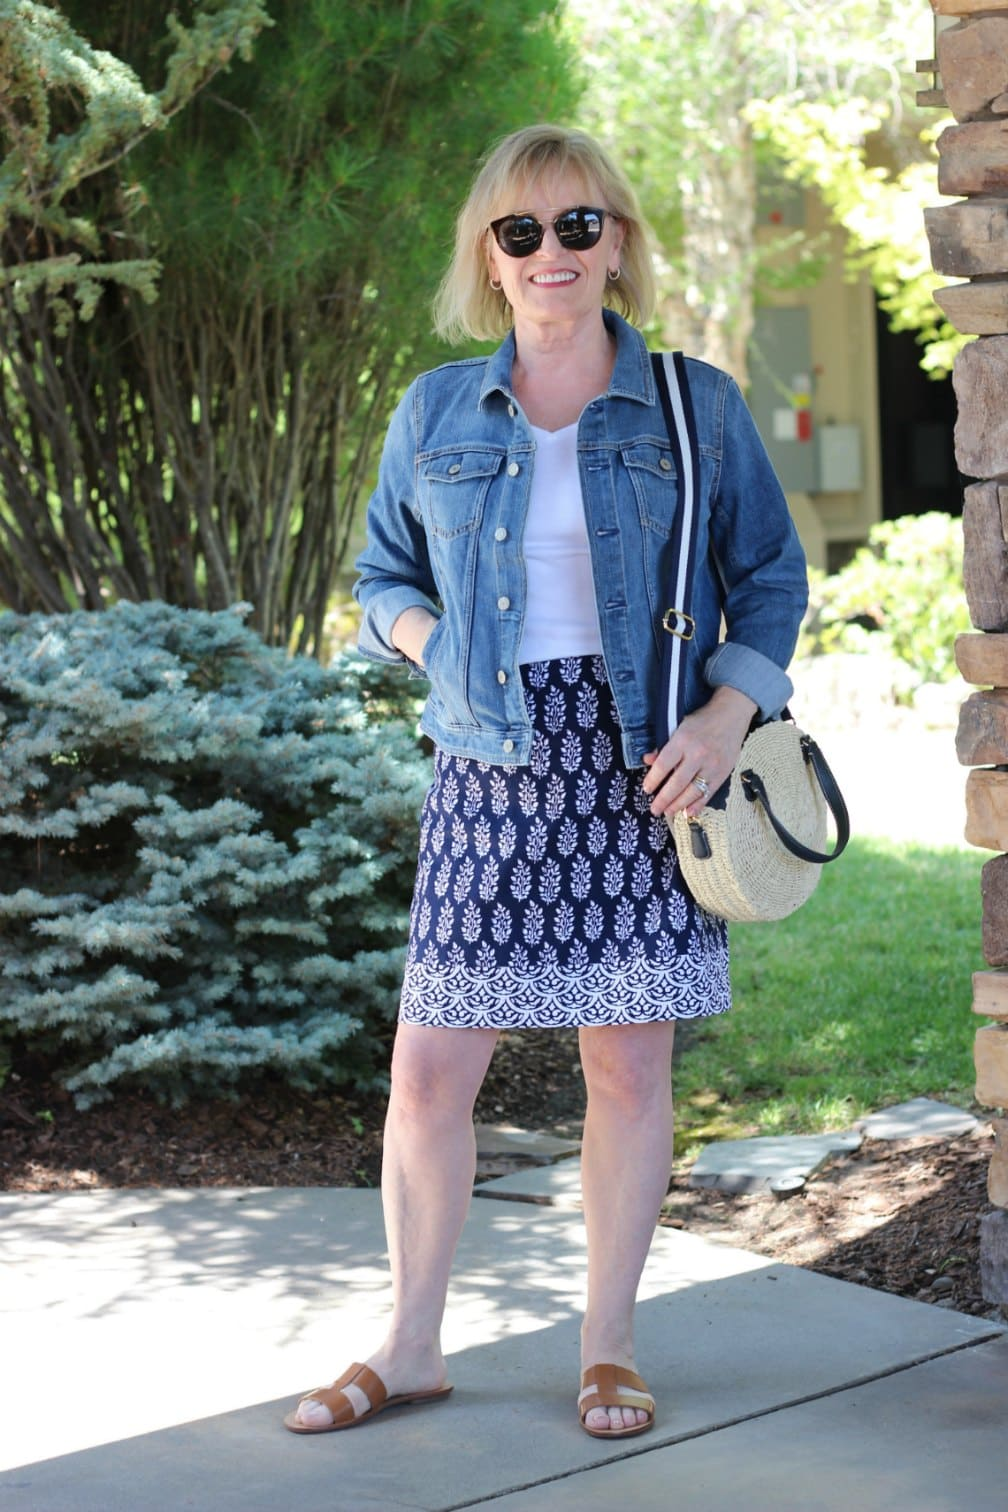 over 50 blogger wearing Talbots denim jacket and geo print skirt